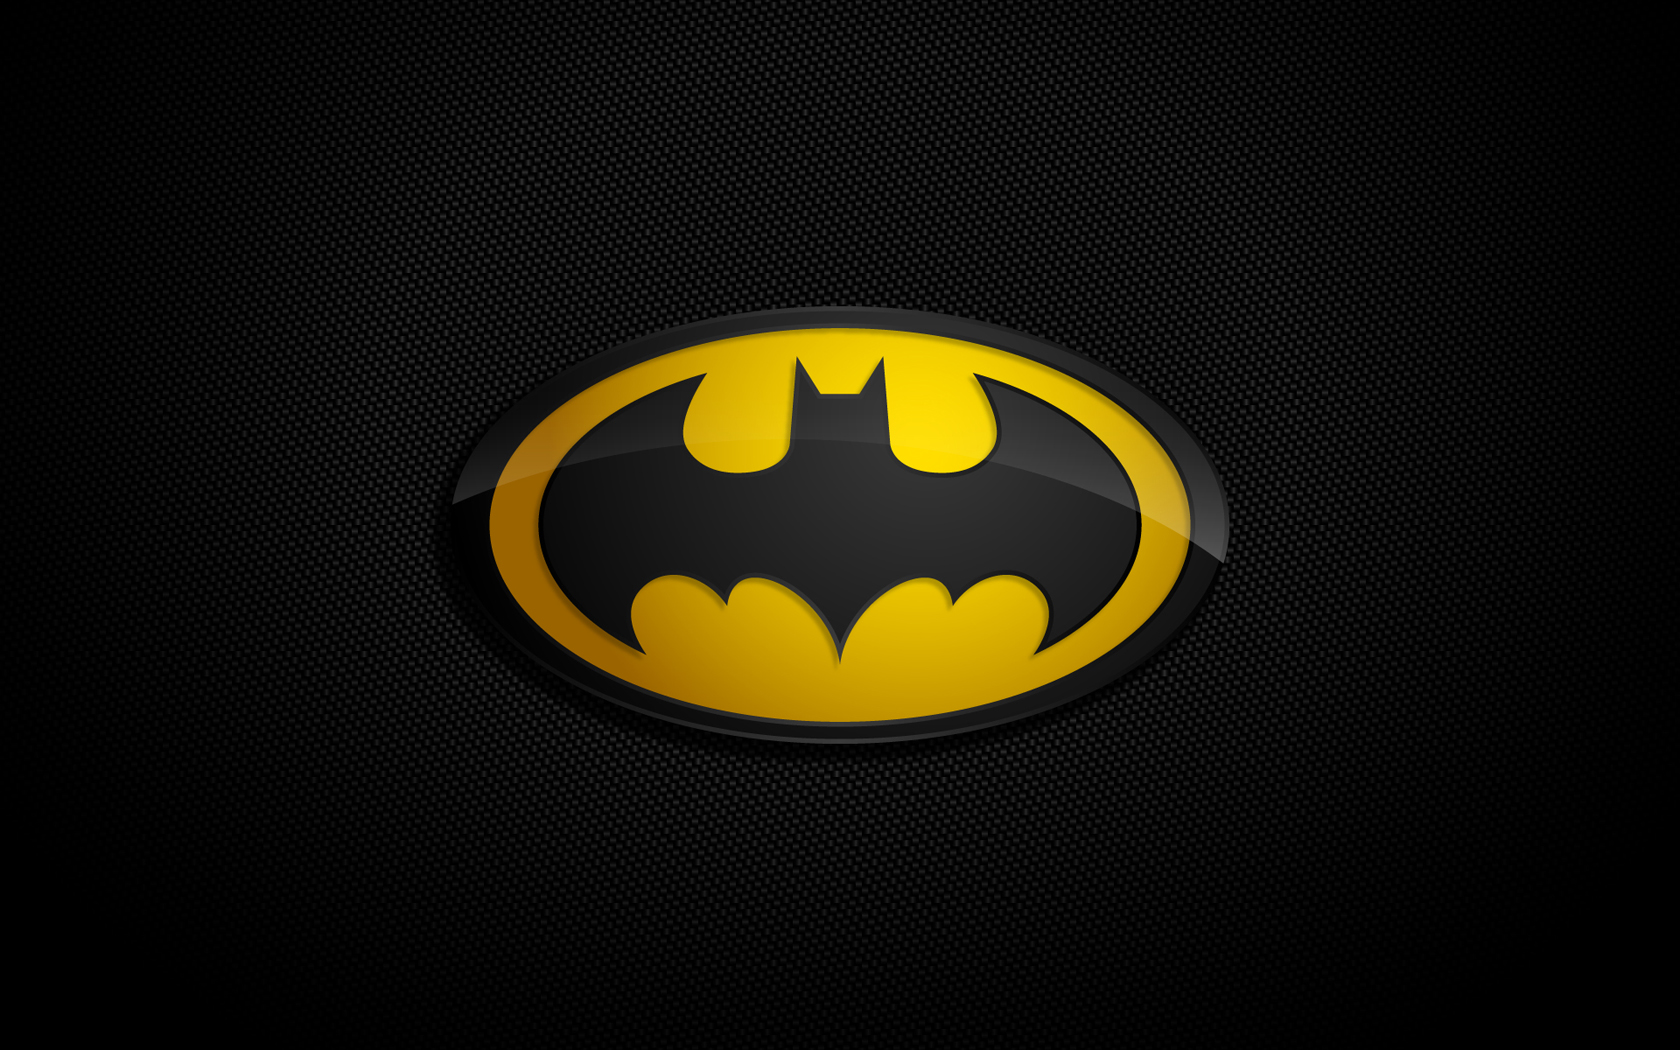 Batman dc comics logos HD Wallpaper